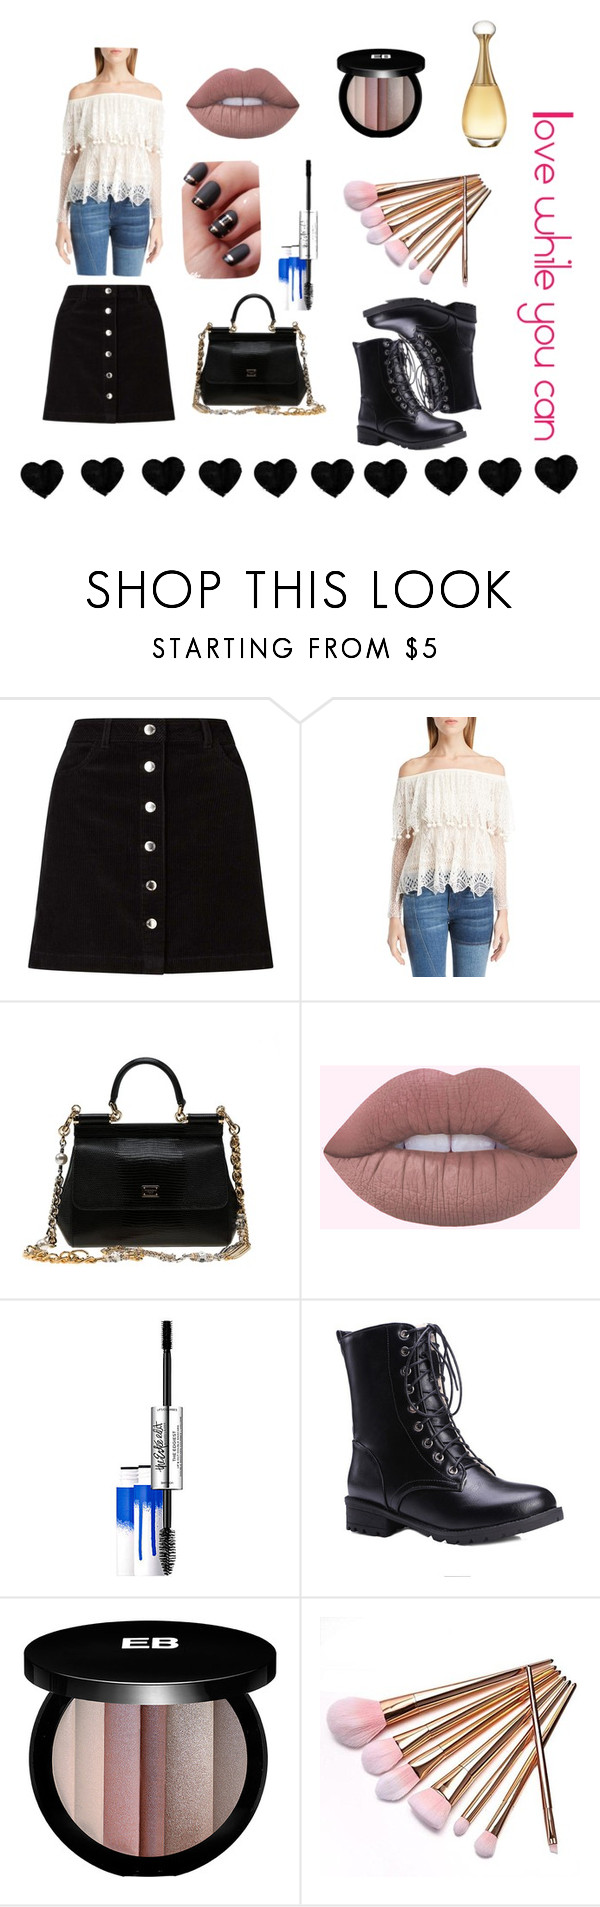 """""""Love while you can"""" by moonshine-angel ❤ liked on Polyvore featuring Miss Selfridge, Alexander McQueen, Dolce&Gabbana, Estée Lauder, Edward Bess, Christian Dior and blackandwhite"""